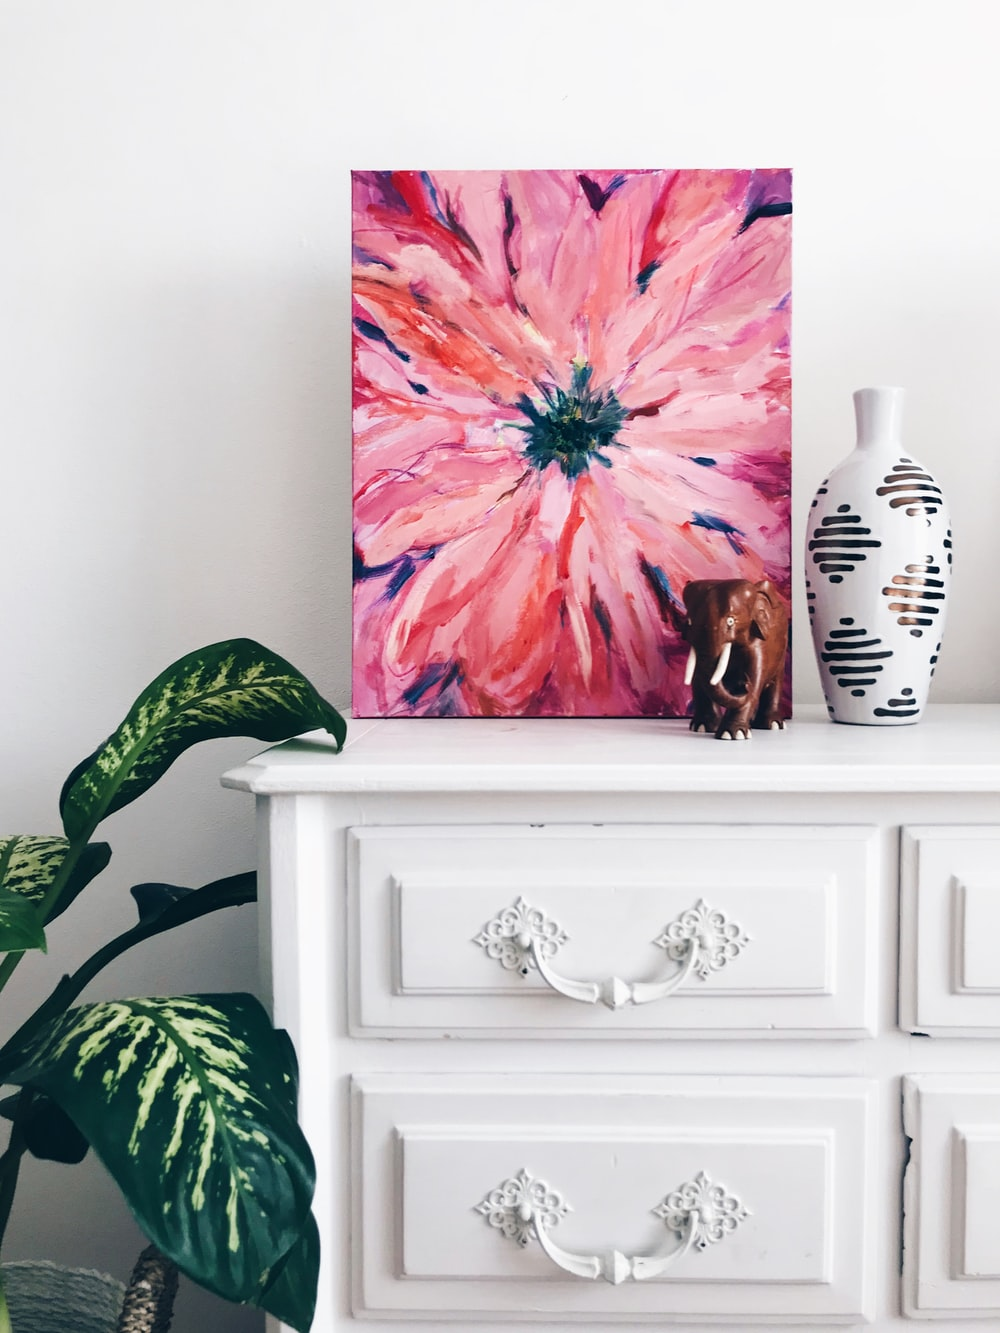 painting of pink flower on dresser near white vase